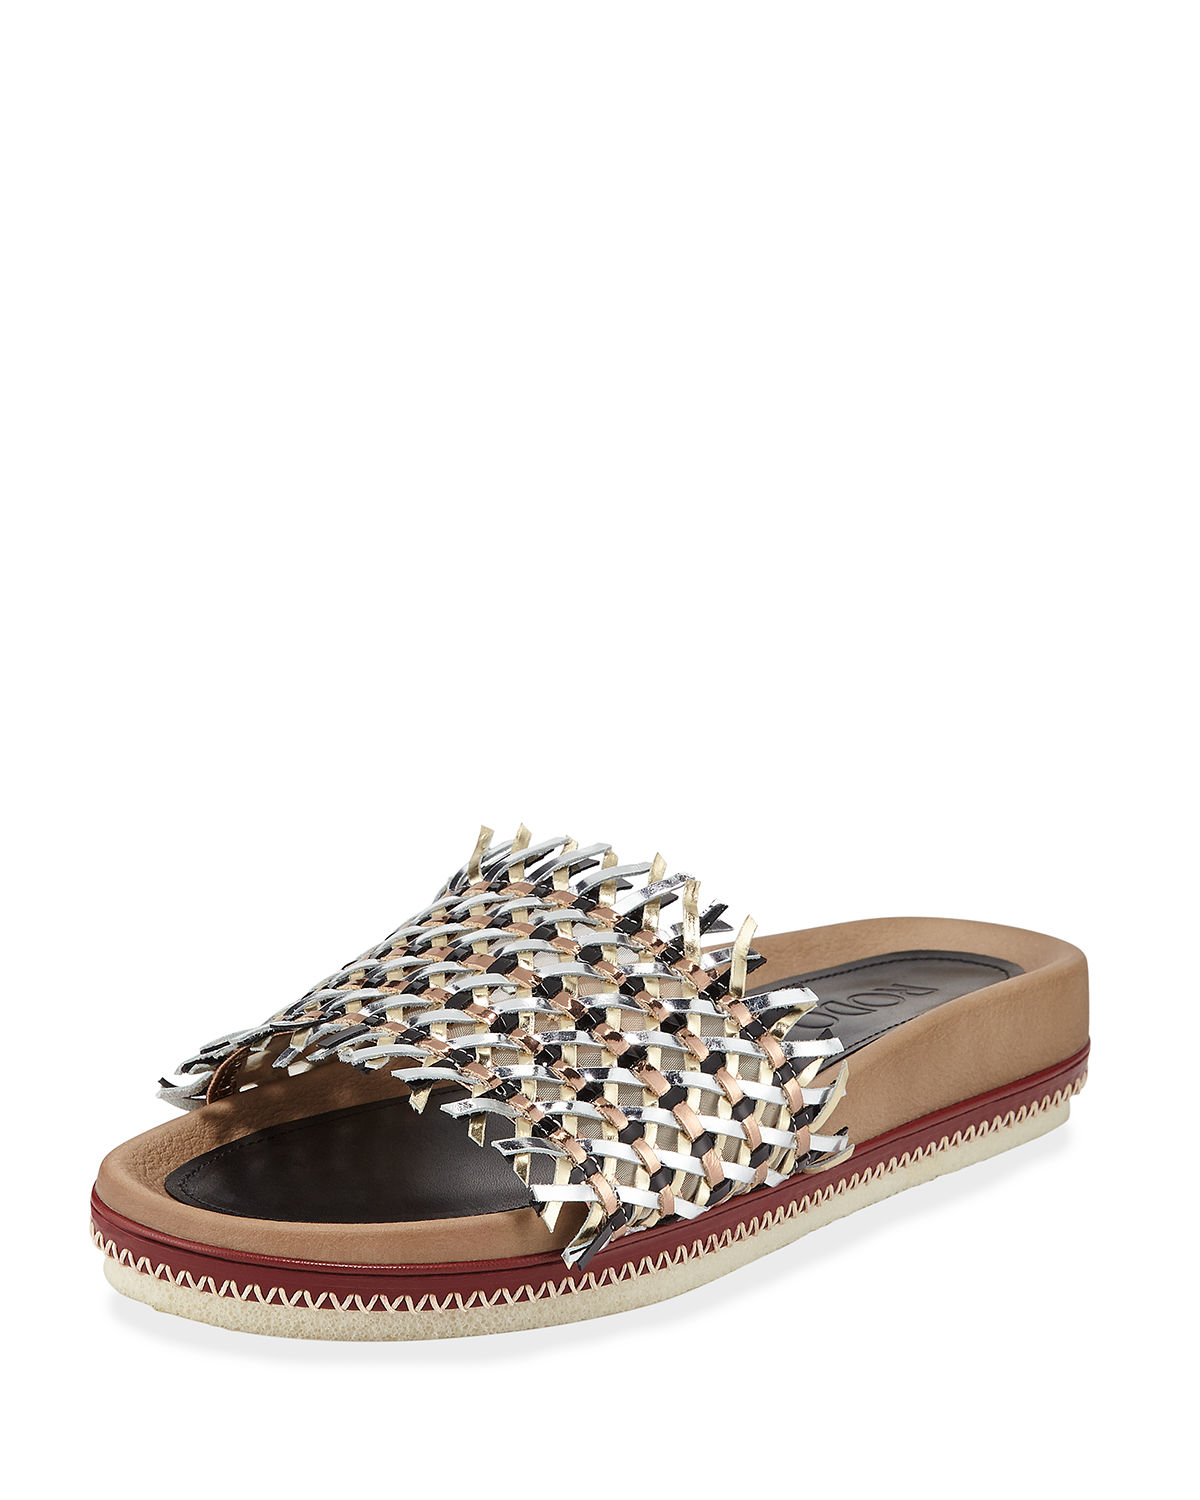 Rodo Woven Leather Slide Sandals In Black